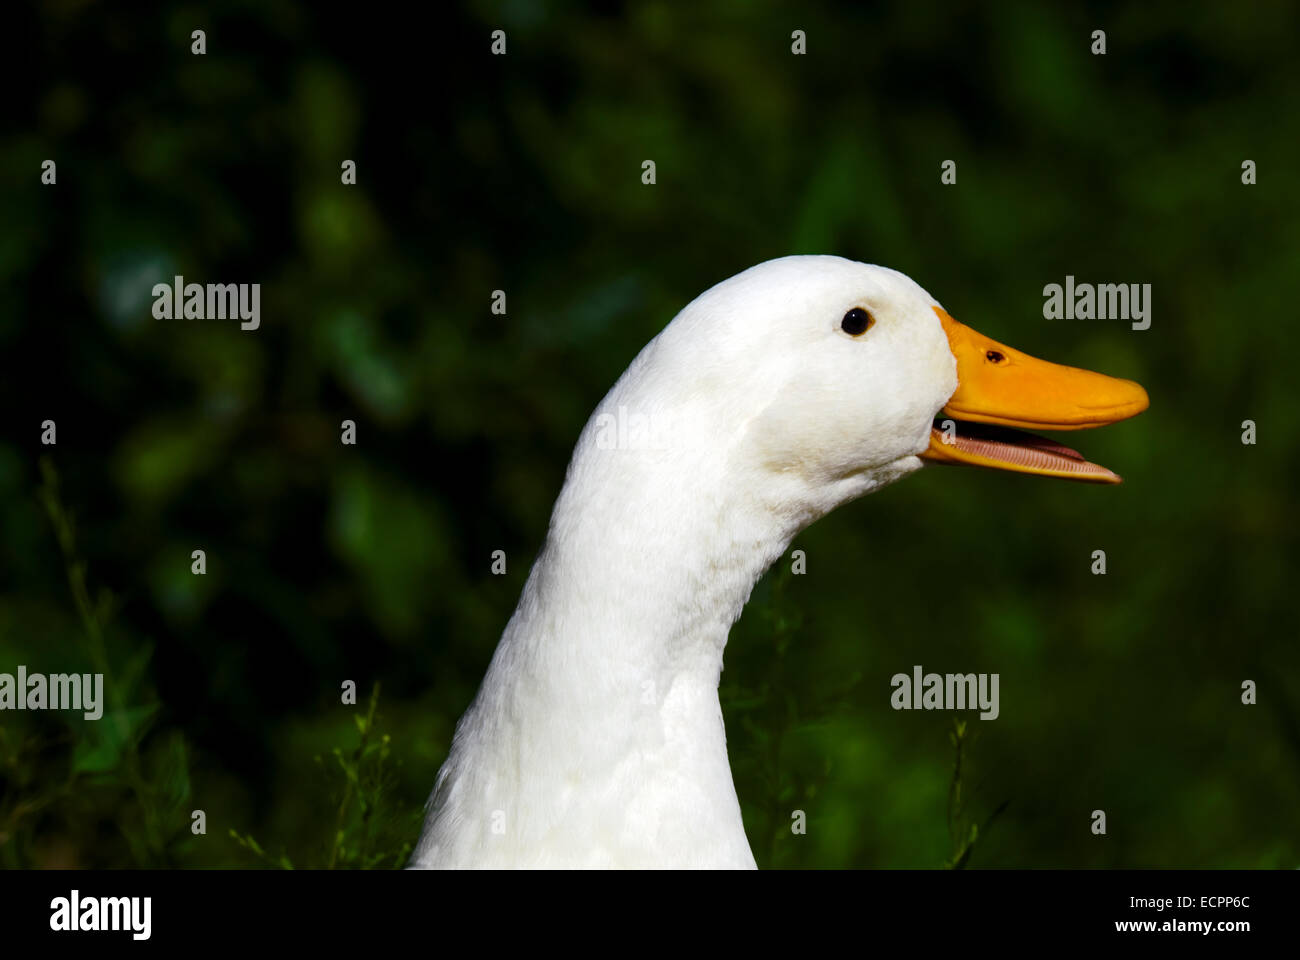 A Pekin duck in some grass, near a pond adjacent to Lake Monroe, Indiana, USA. - Stock Image